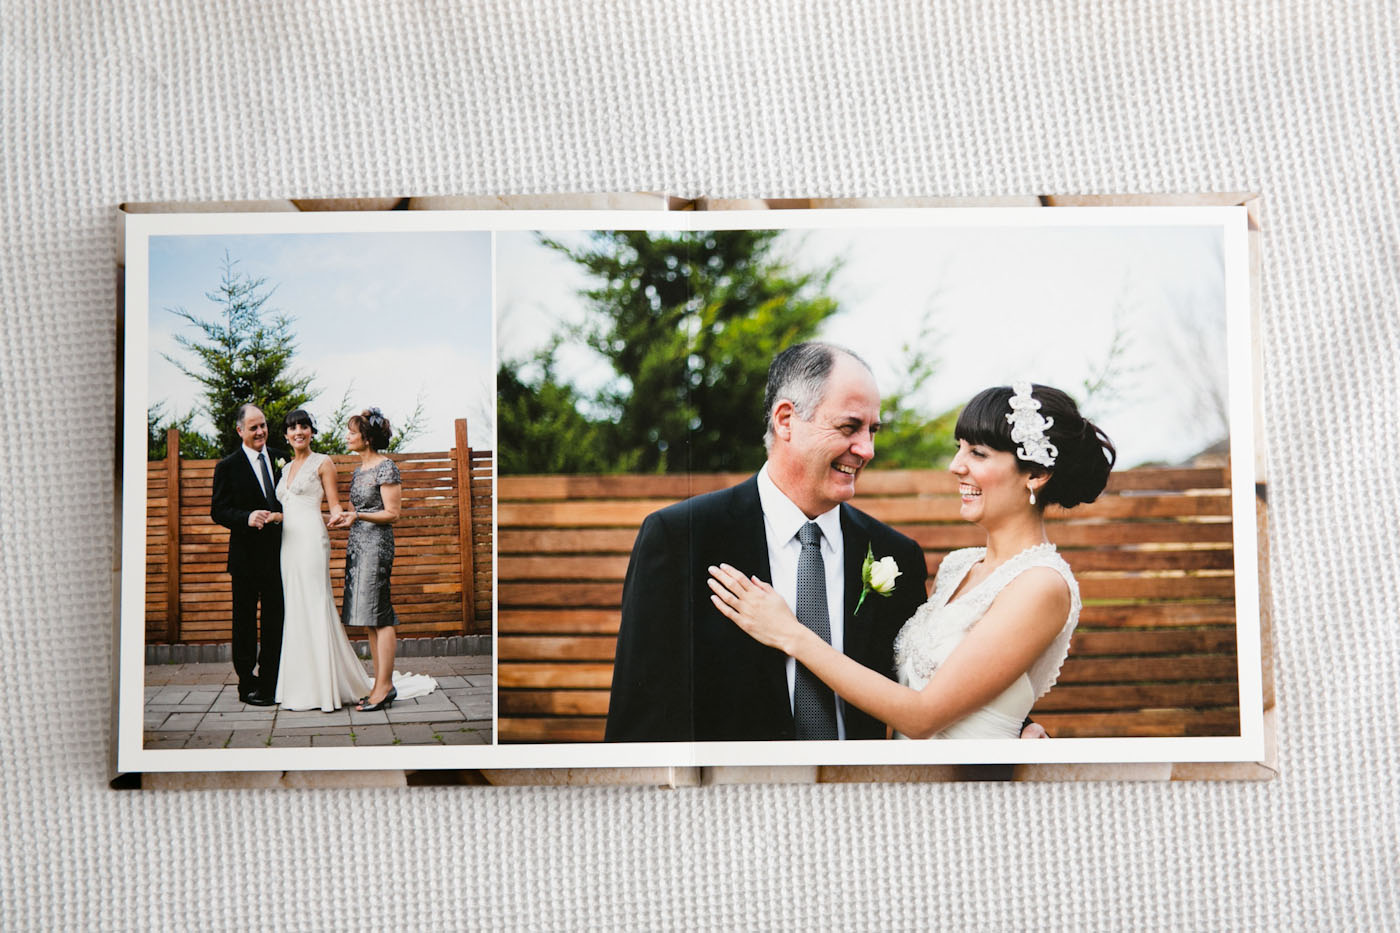 memorable photo album as Wedding Gift for Parents